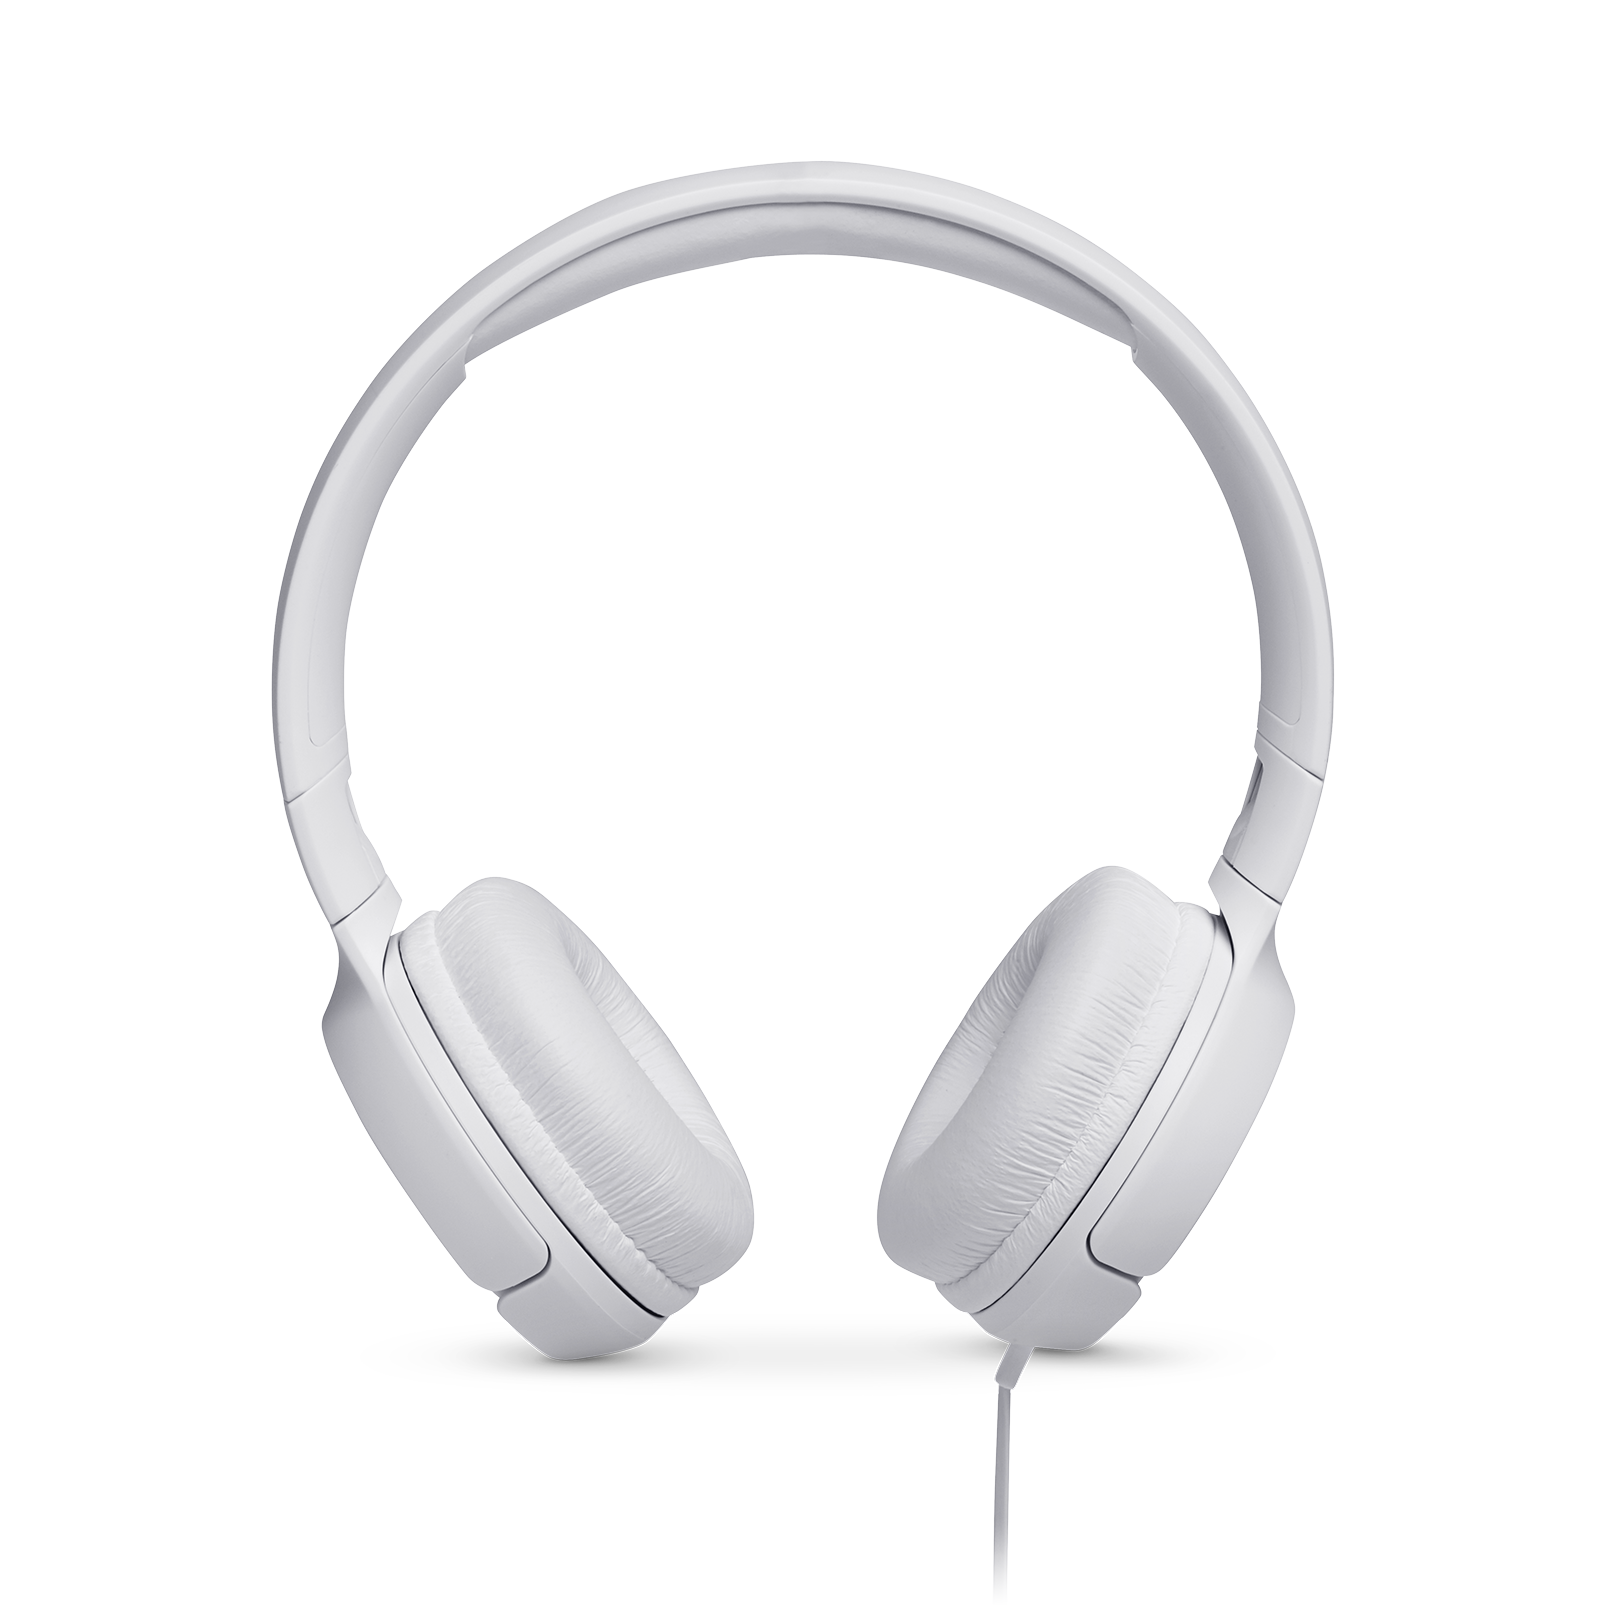 JBL TUNE 500 - White - Wired on-ear headphones - Front